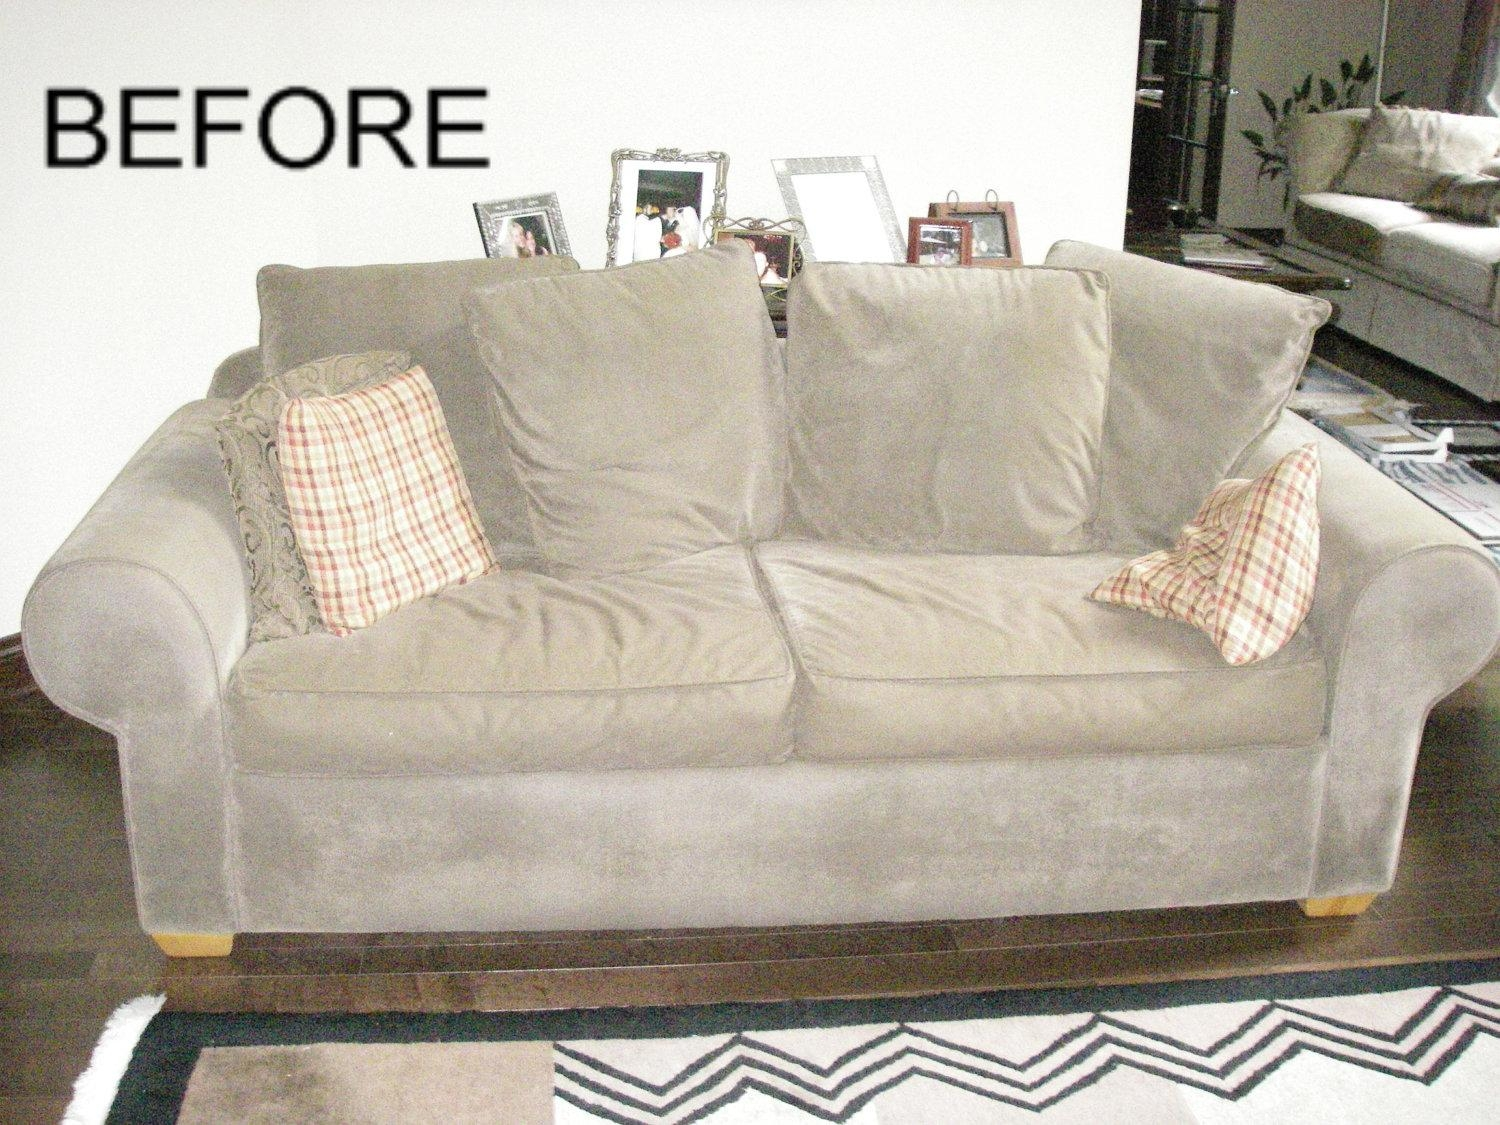 Slipcover For Sofa With Concept Photo 4439 | Kengire With Slip Covers For Love Seats (Image 15 of 20)